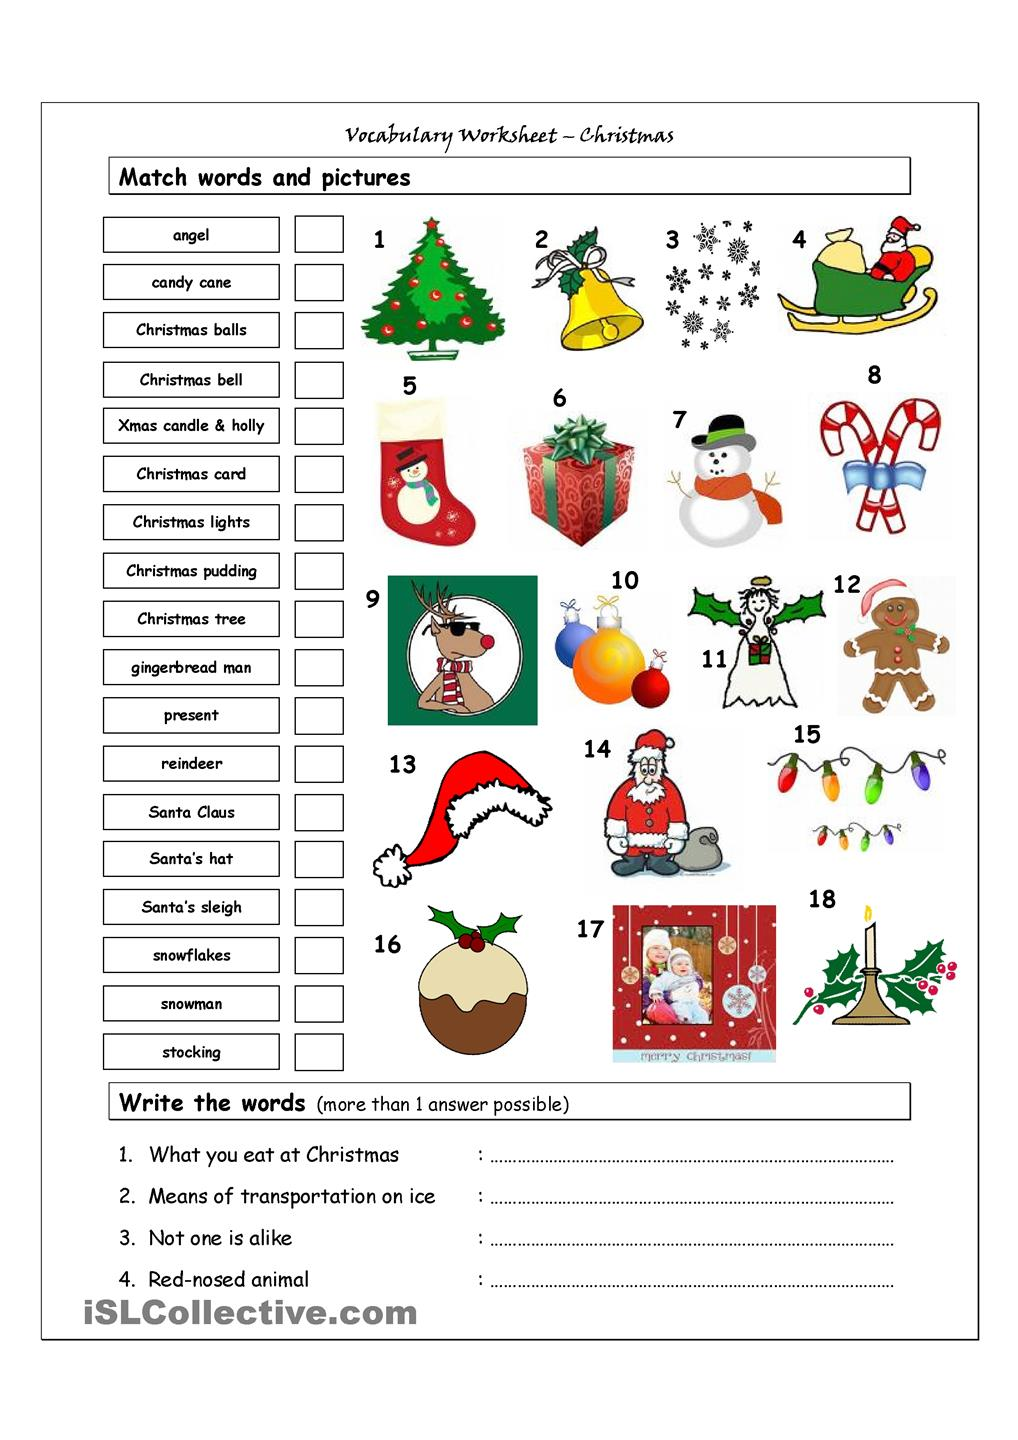 Worksheets On Christmas Worksheets For All